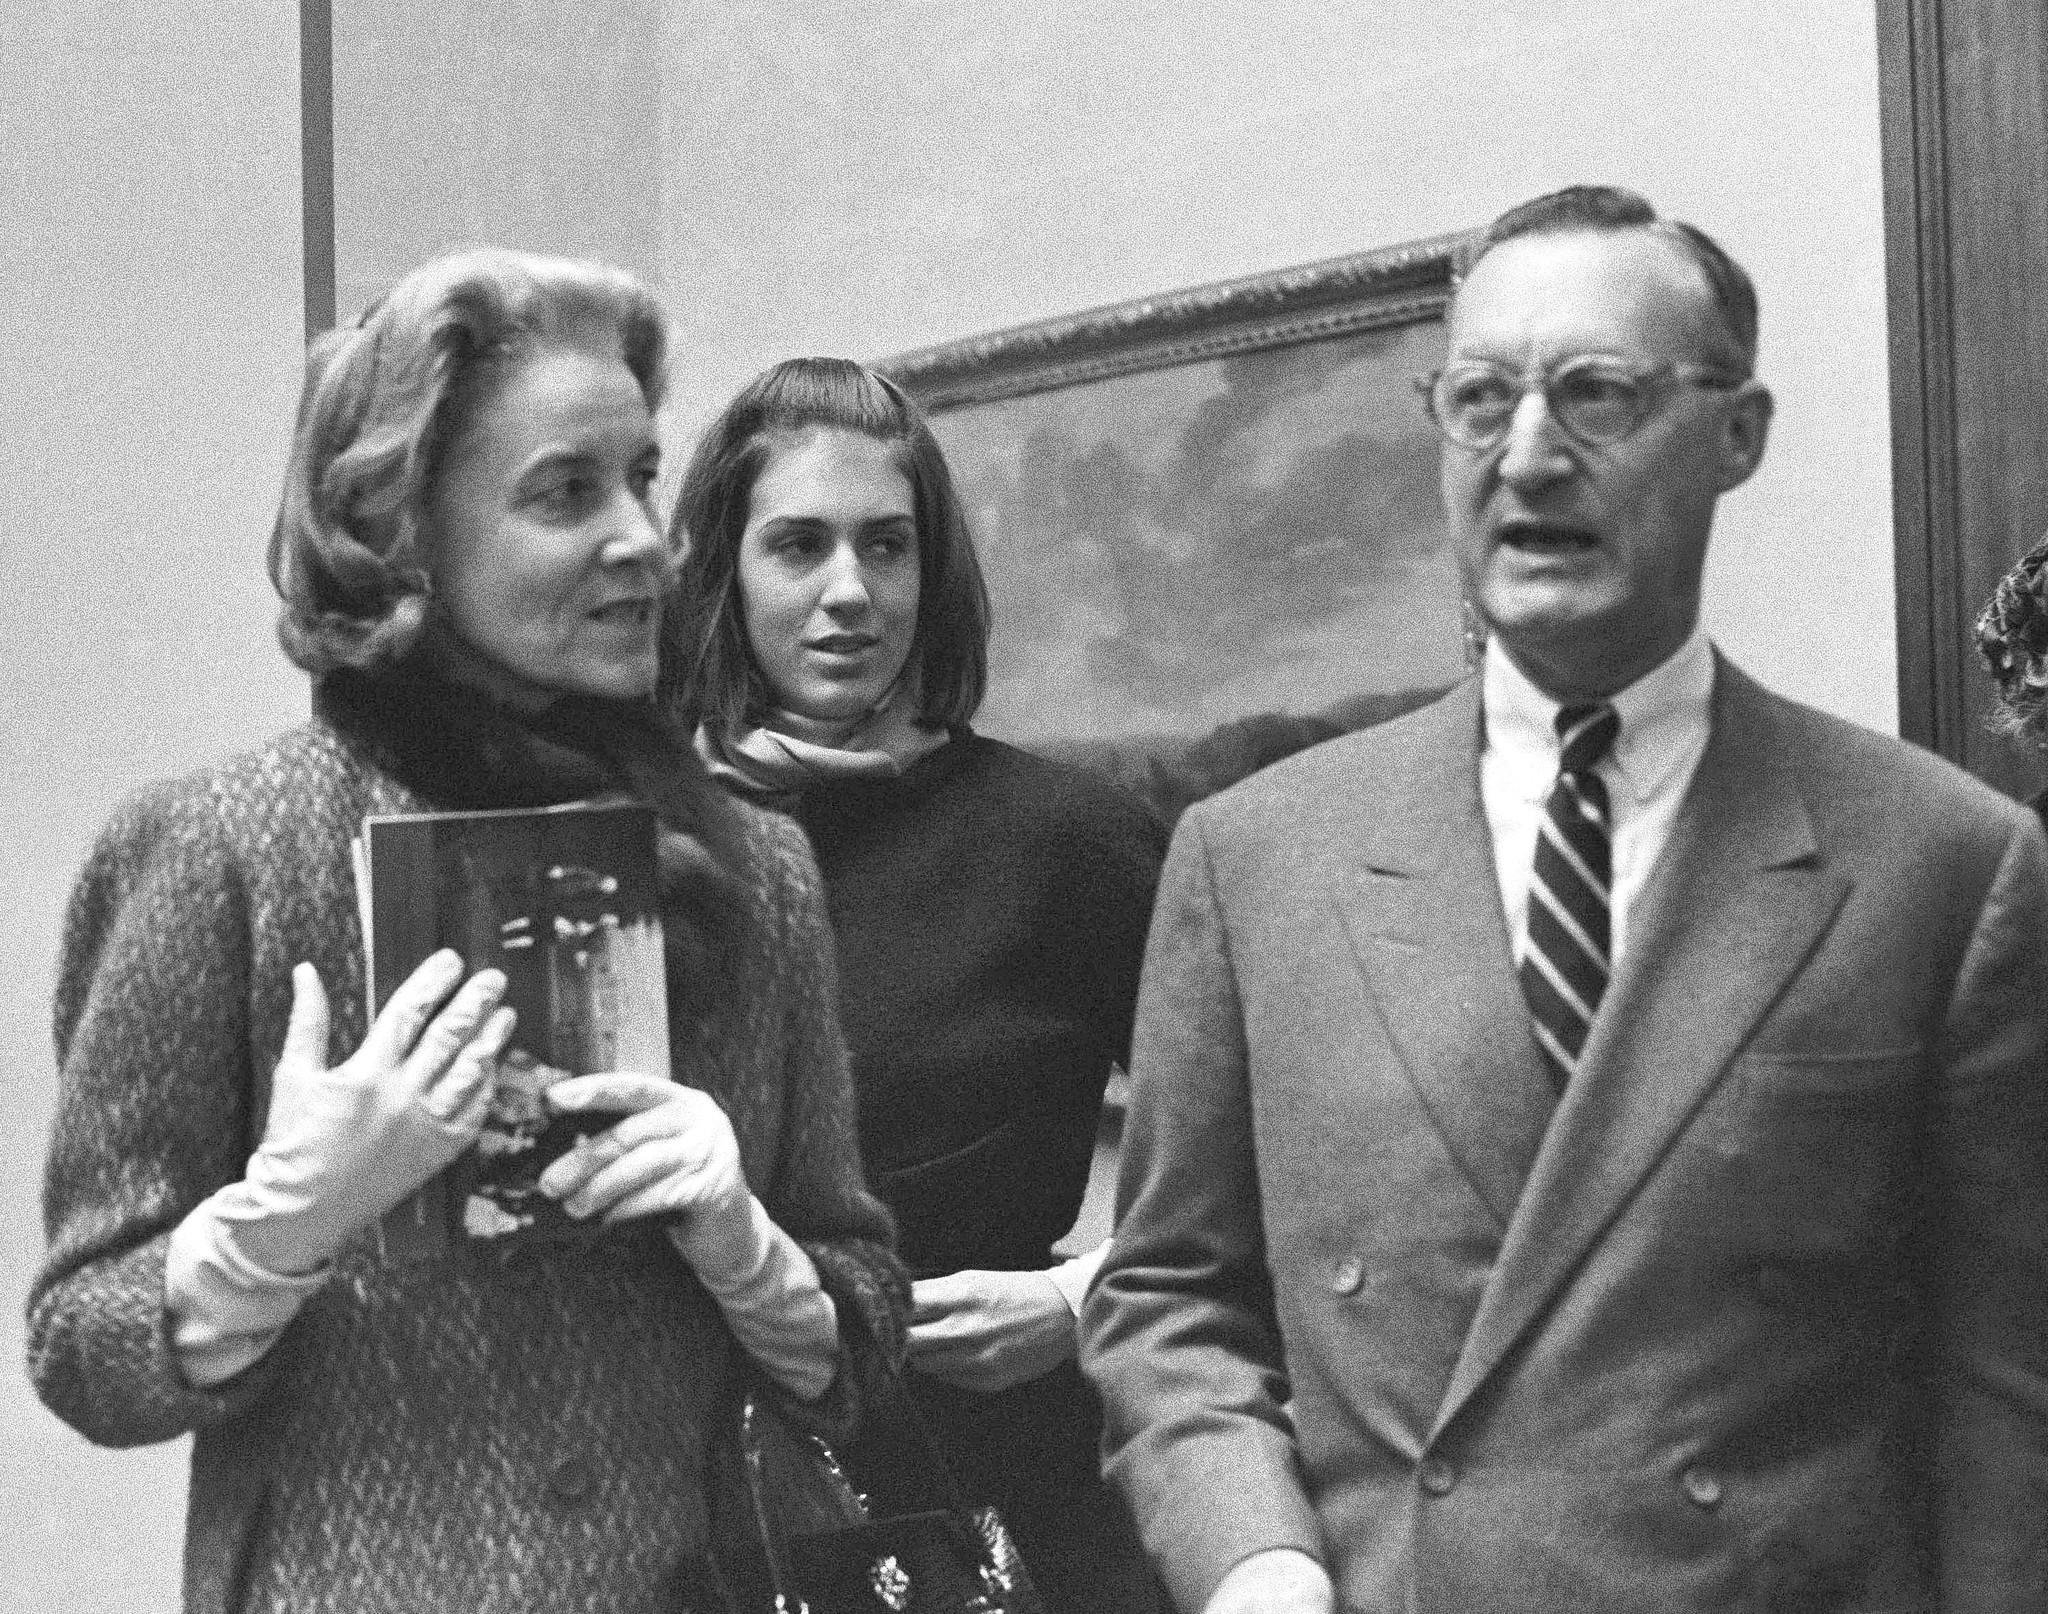 Paul Mellon, his wife, Rachel Bunny Mellon, and stepdaughter Eliza Lloyd at a preview of the Mellons' collection of English Art at the Royal Academy in London on Dec. 11, 1964.